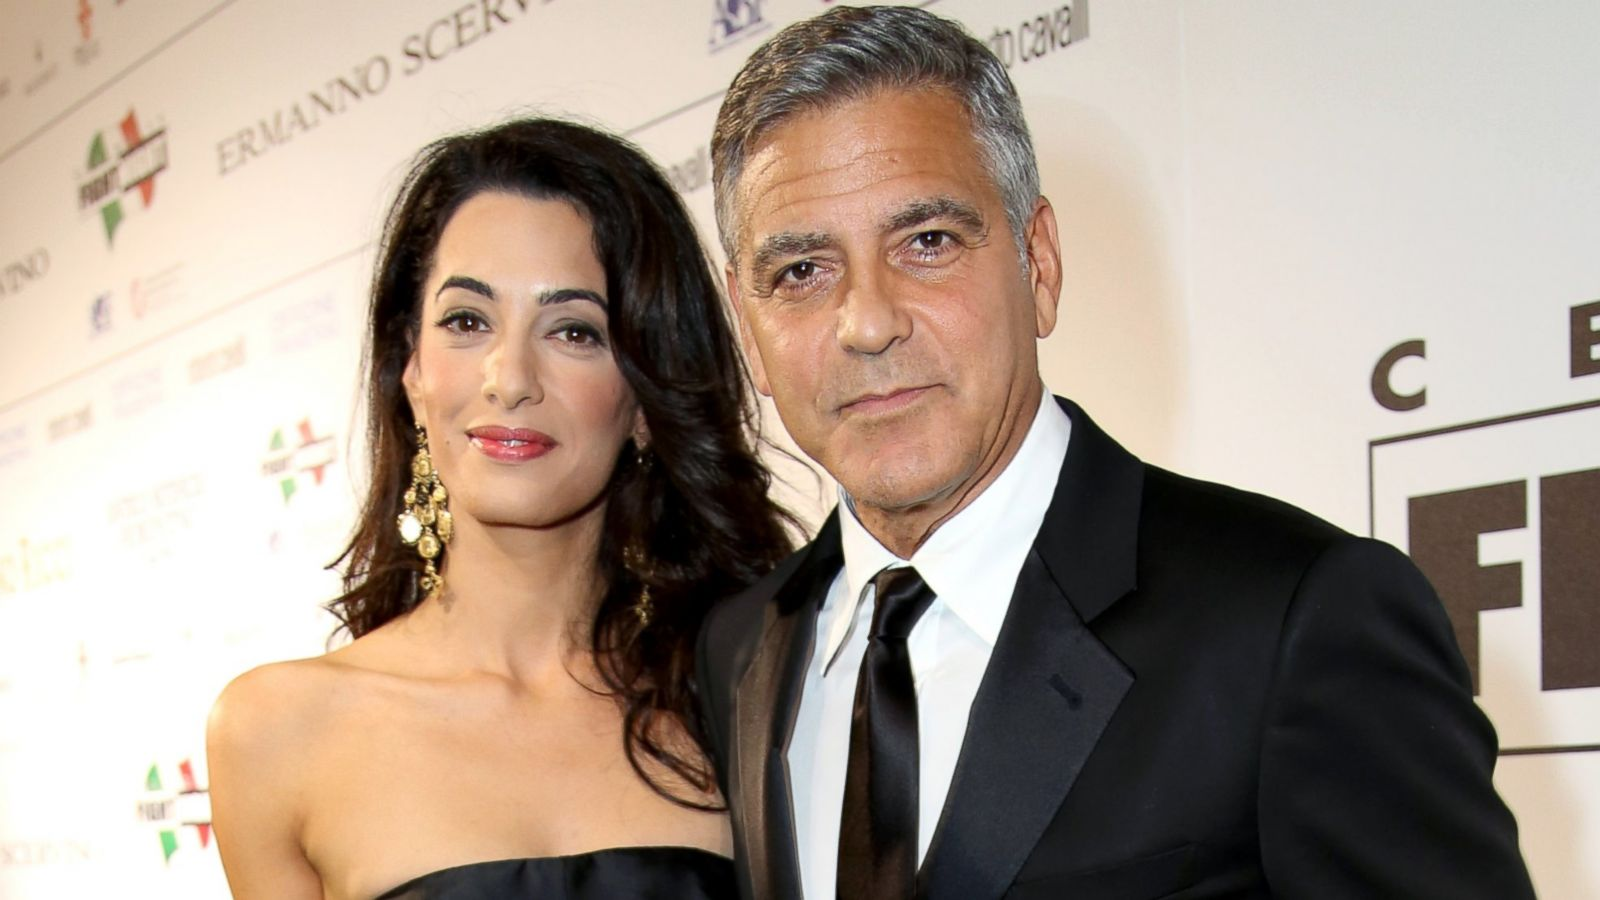 Here S What We Know So Far About George Clooney S Wedding To Amal Alamuddin Abc News